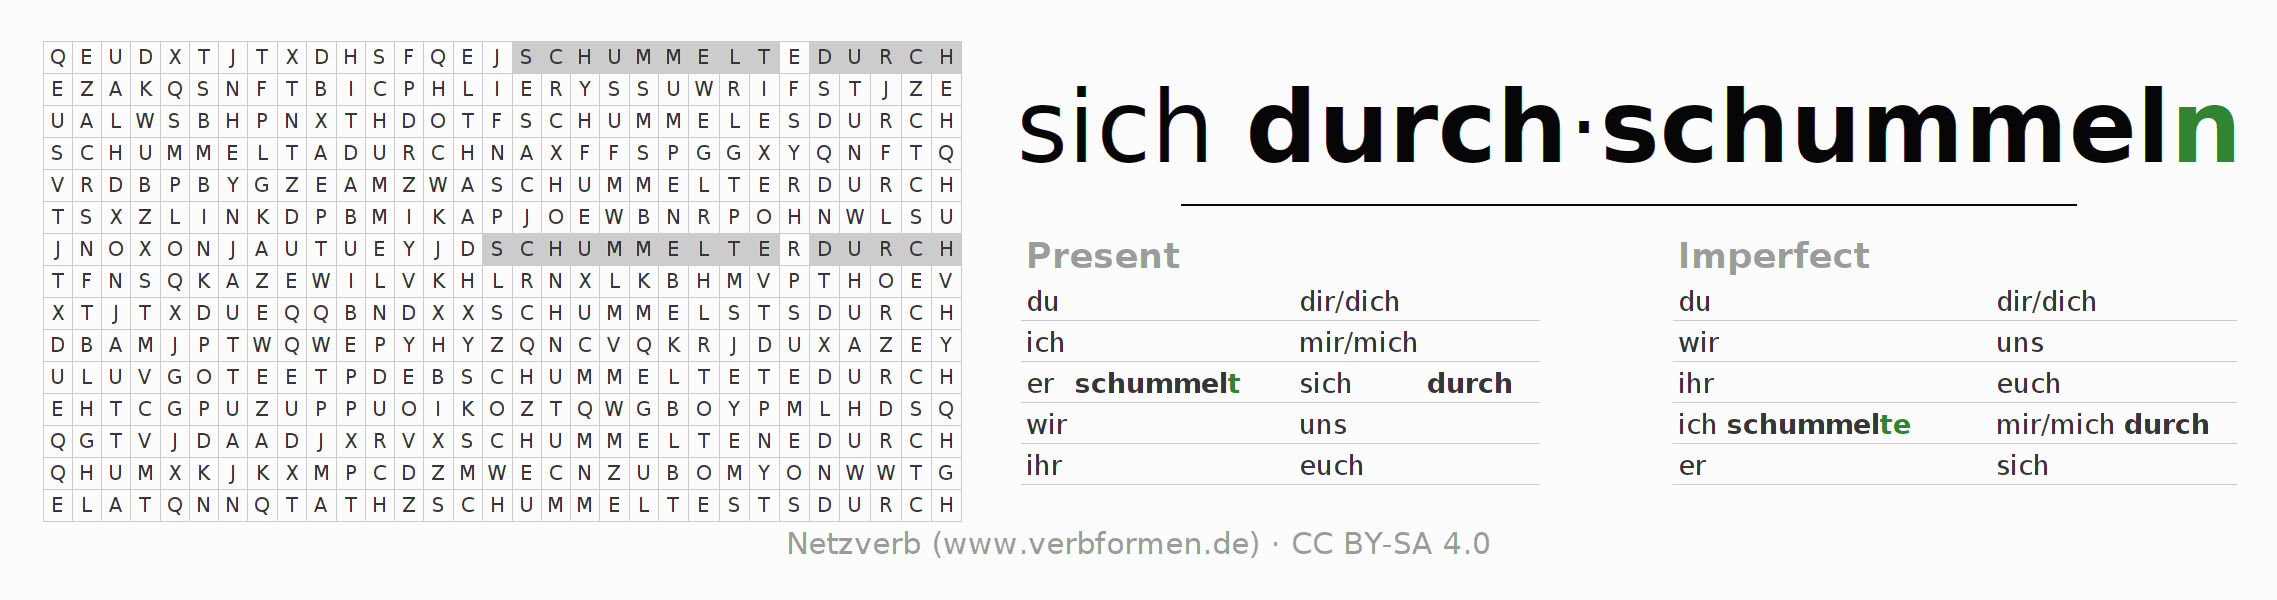 Word search puzzle for the conjugation of the verb sich durchschummeln